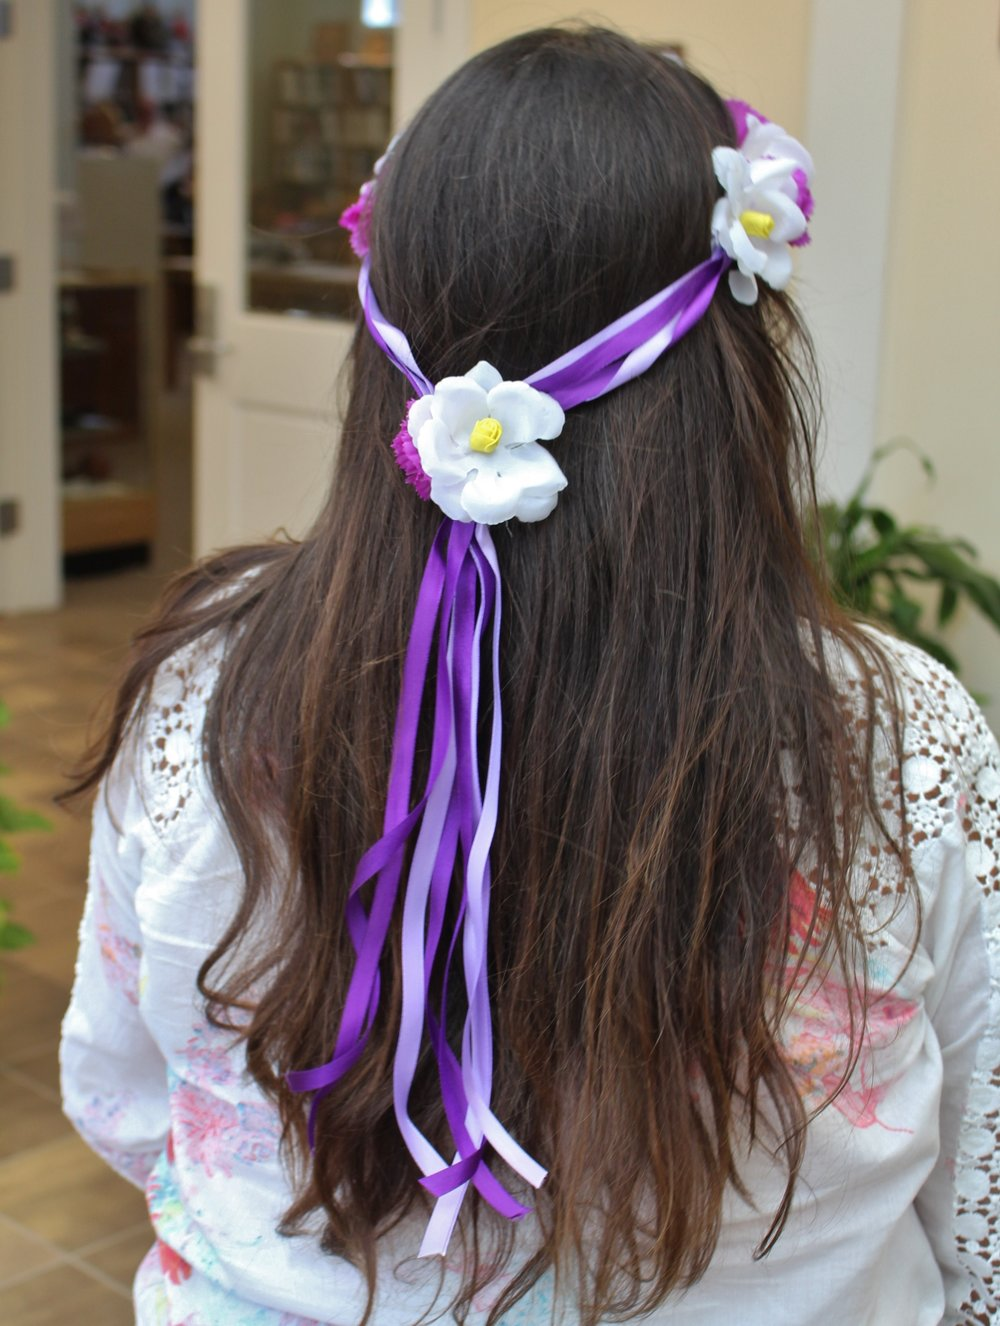 Hair ribbons2.jpg